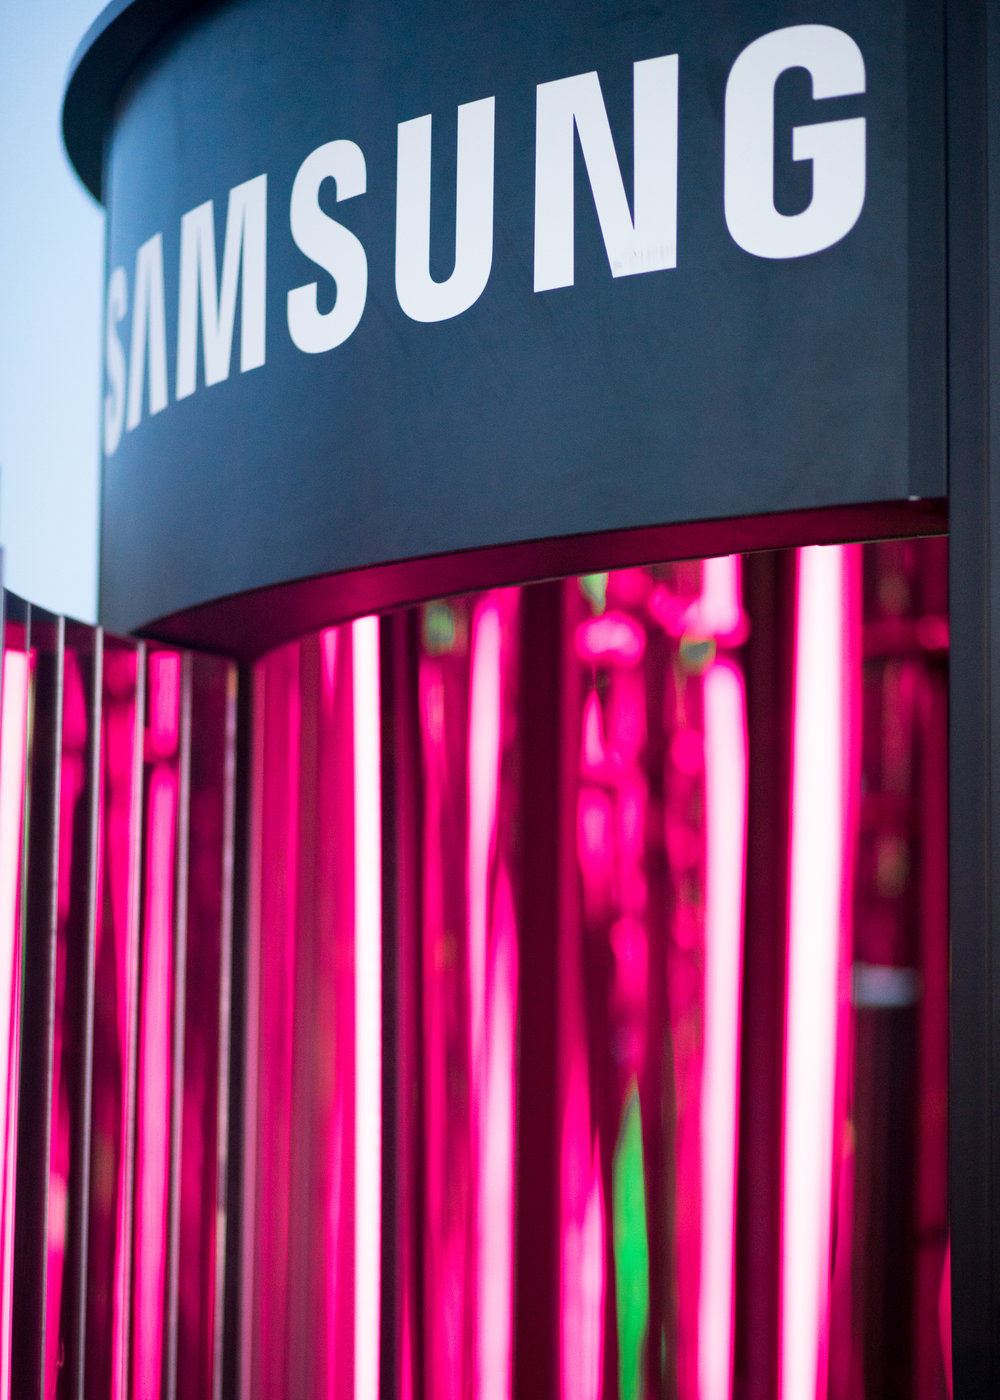 Ultimate Hollywood Coachella Poolside Party samsung photo booth.jpg